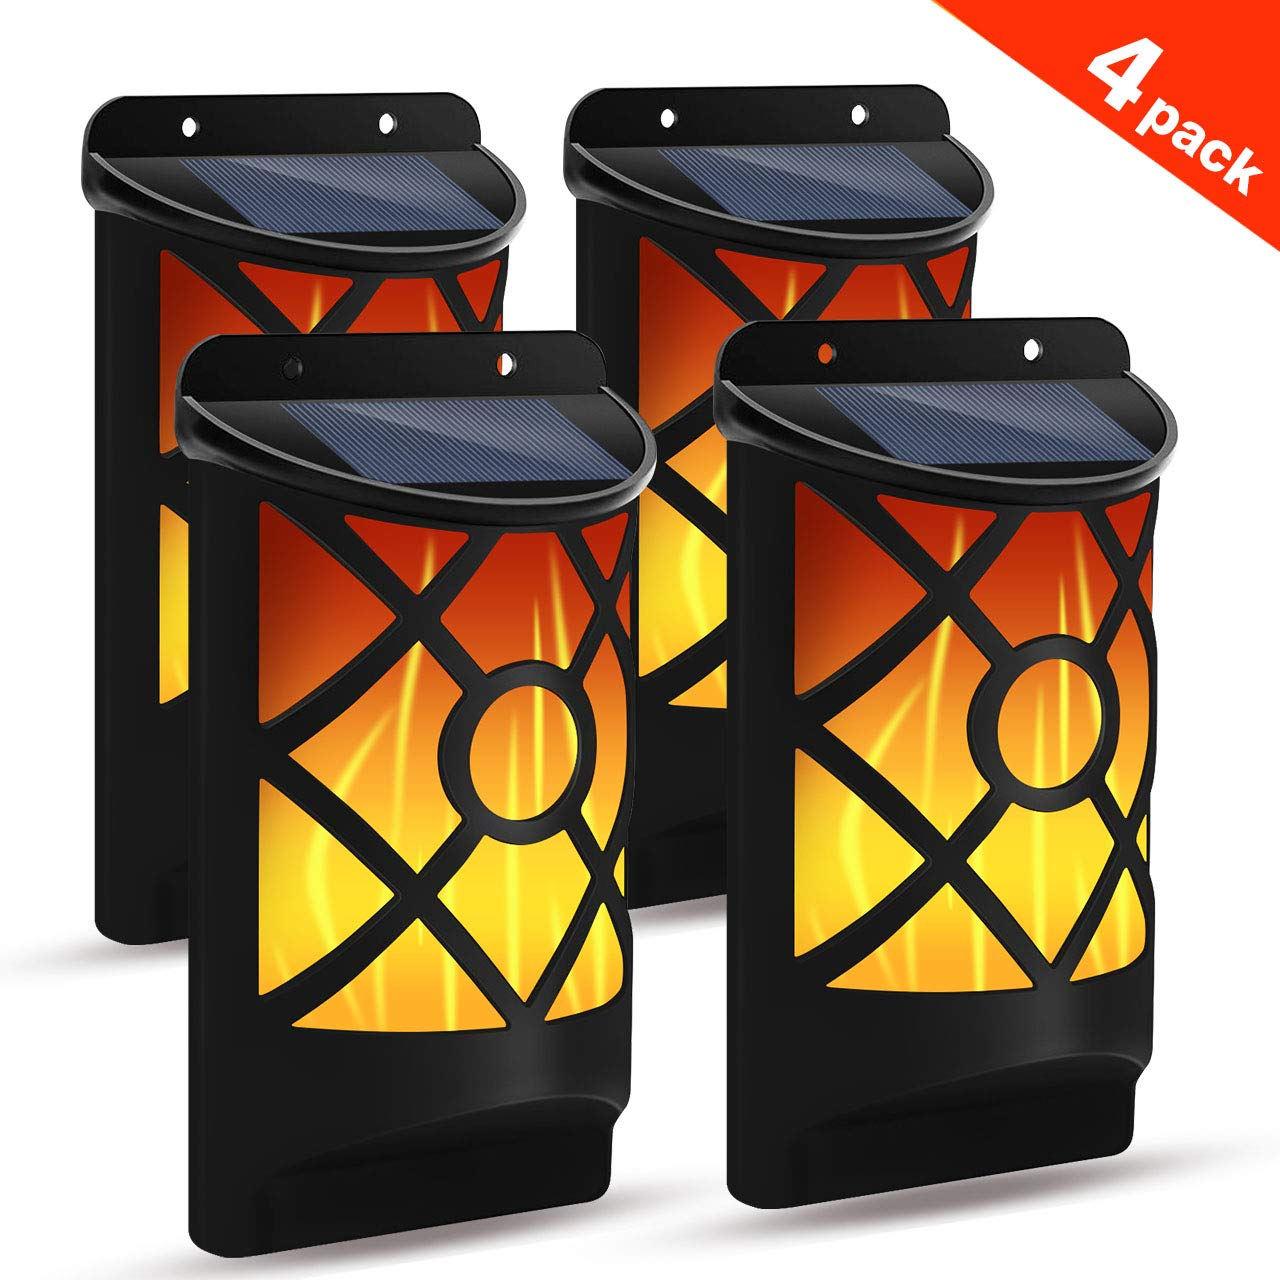 Solar Flame Lights Outdoor, Flickering Flame Wall Lights Outdoor Solar Spotlights Landscape Decoration Lighting Dusk to Dawn Auto On/Off 66 LEDWaterproof Solar Powered Wall Lights Garden (4 Pack) by YUJENY